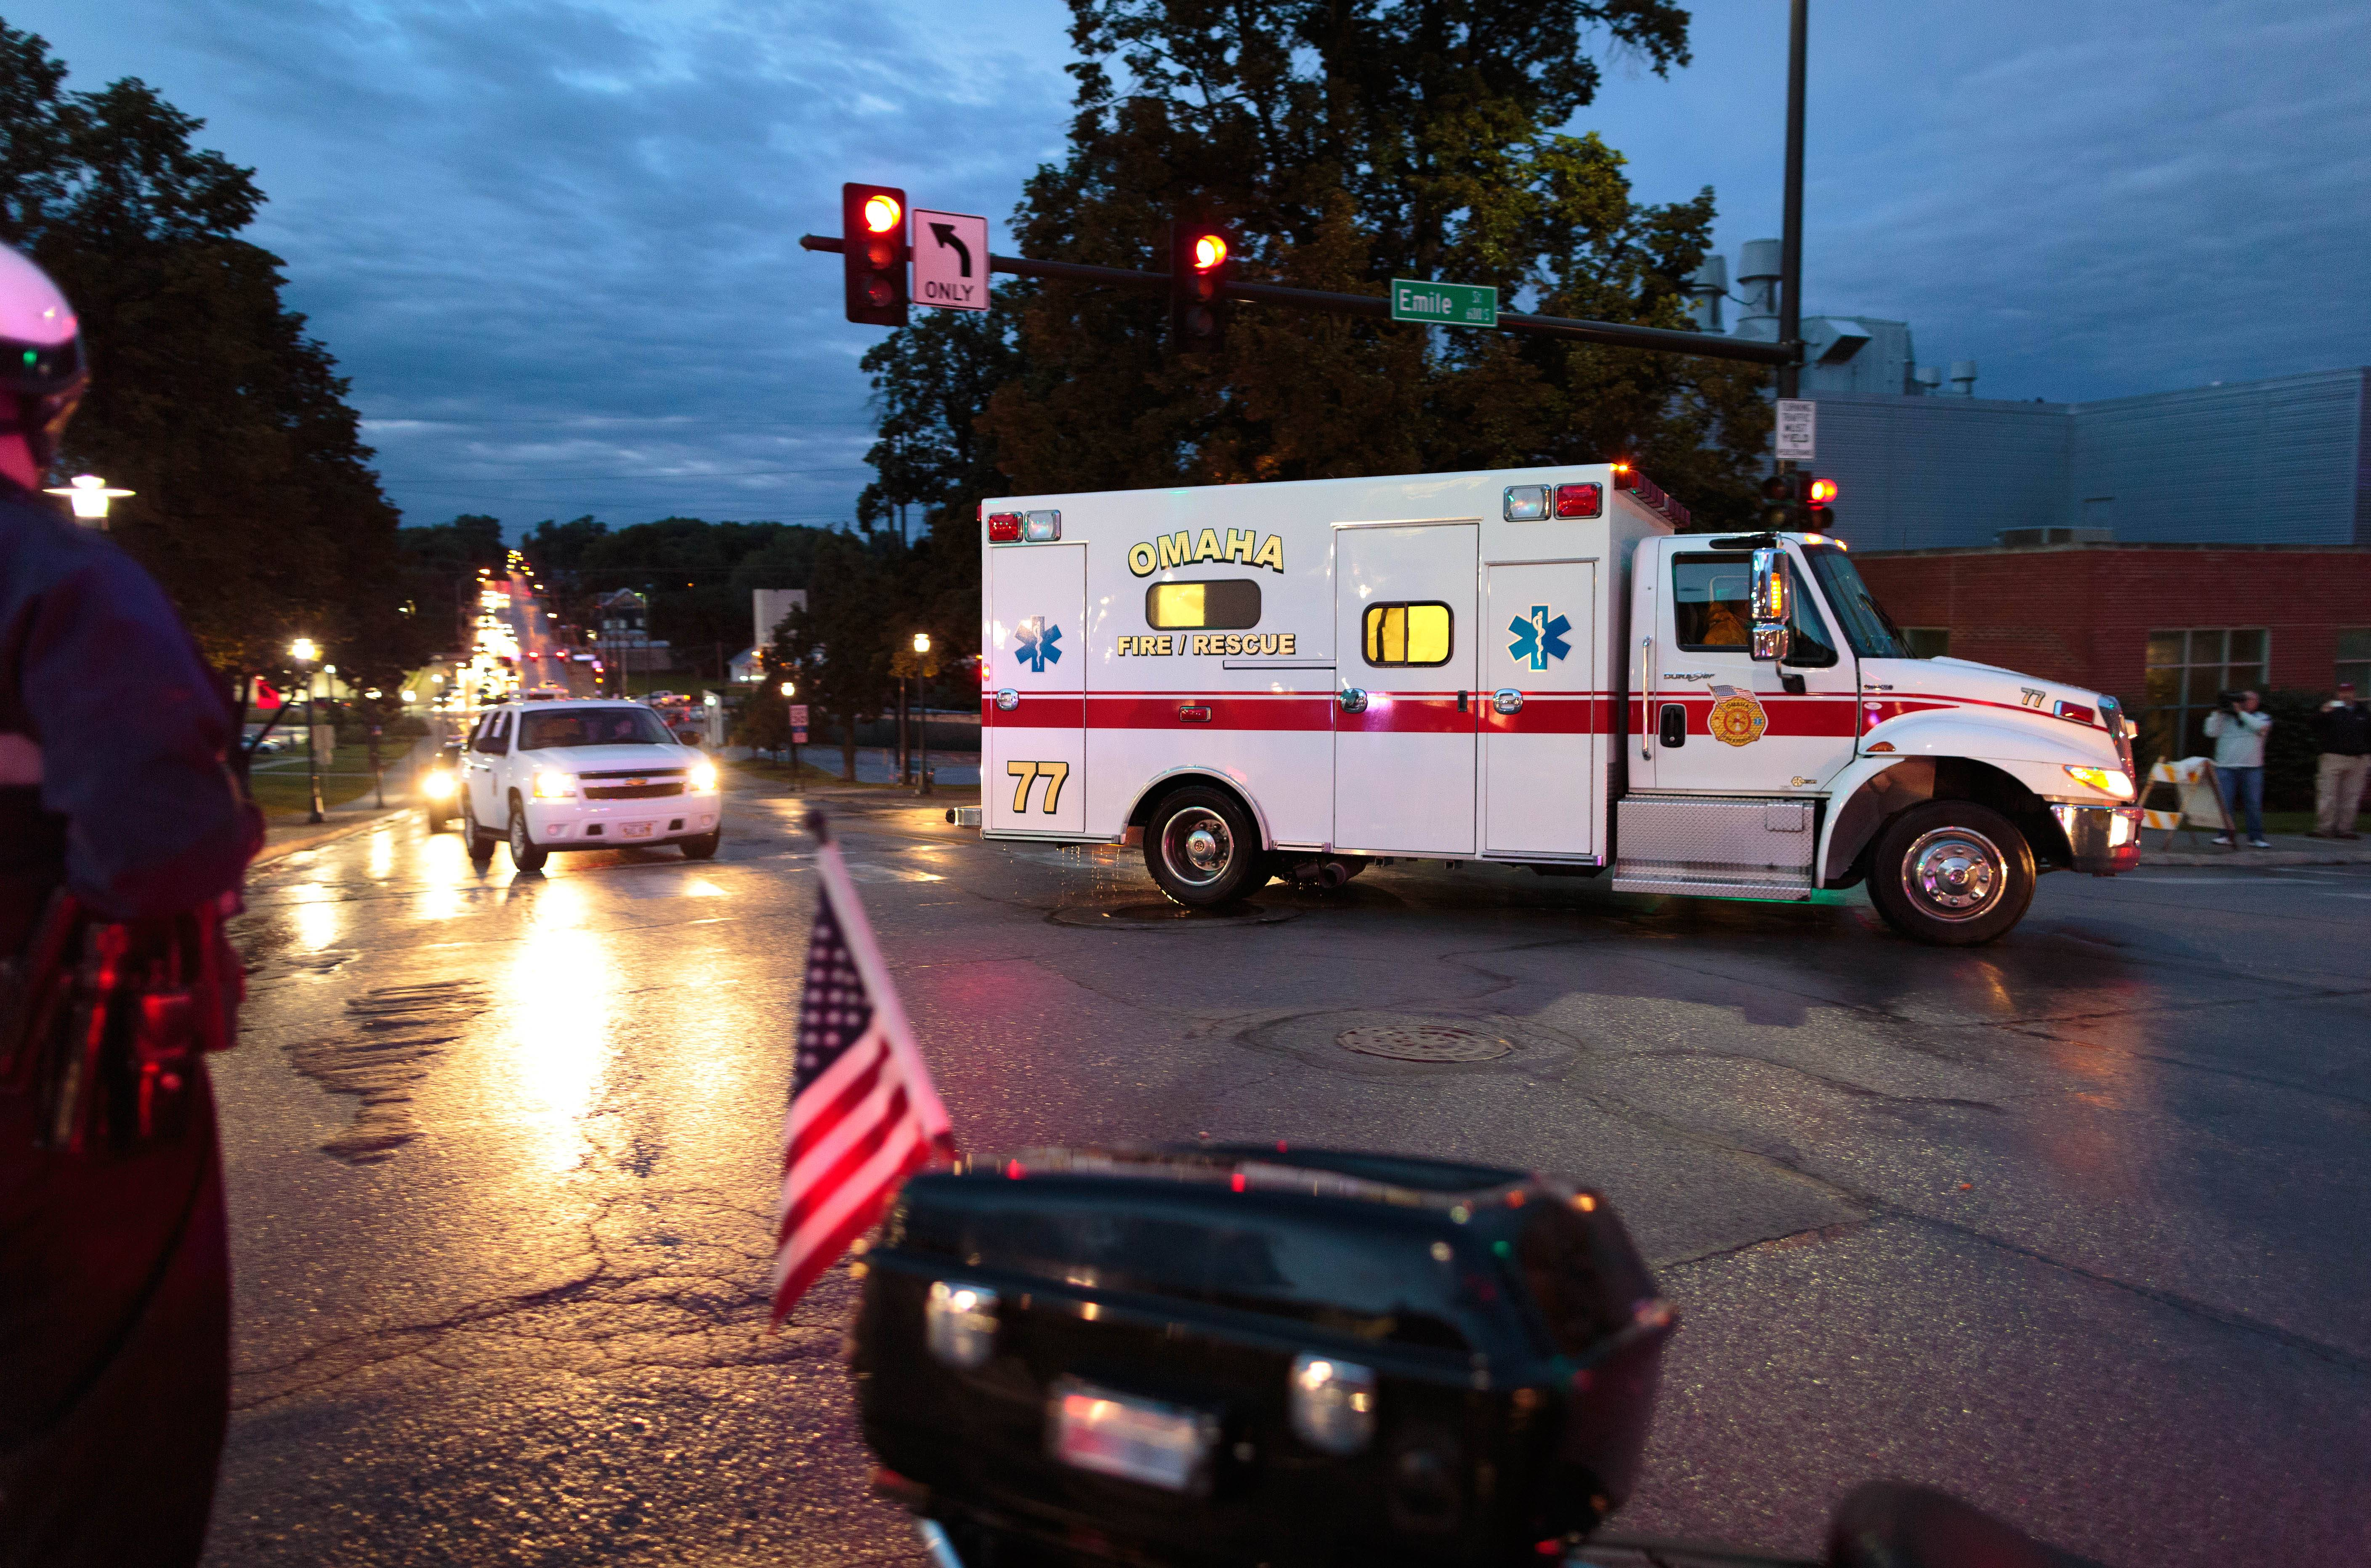 U.S. doctor infected with Ebola arrives in Nebraska